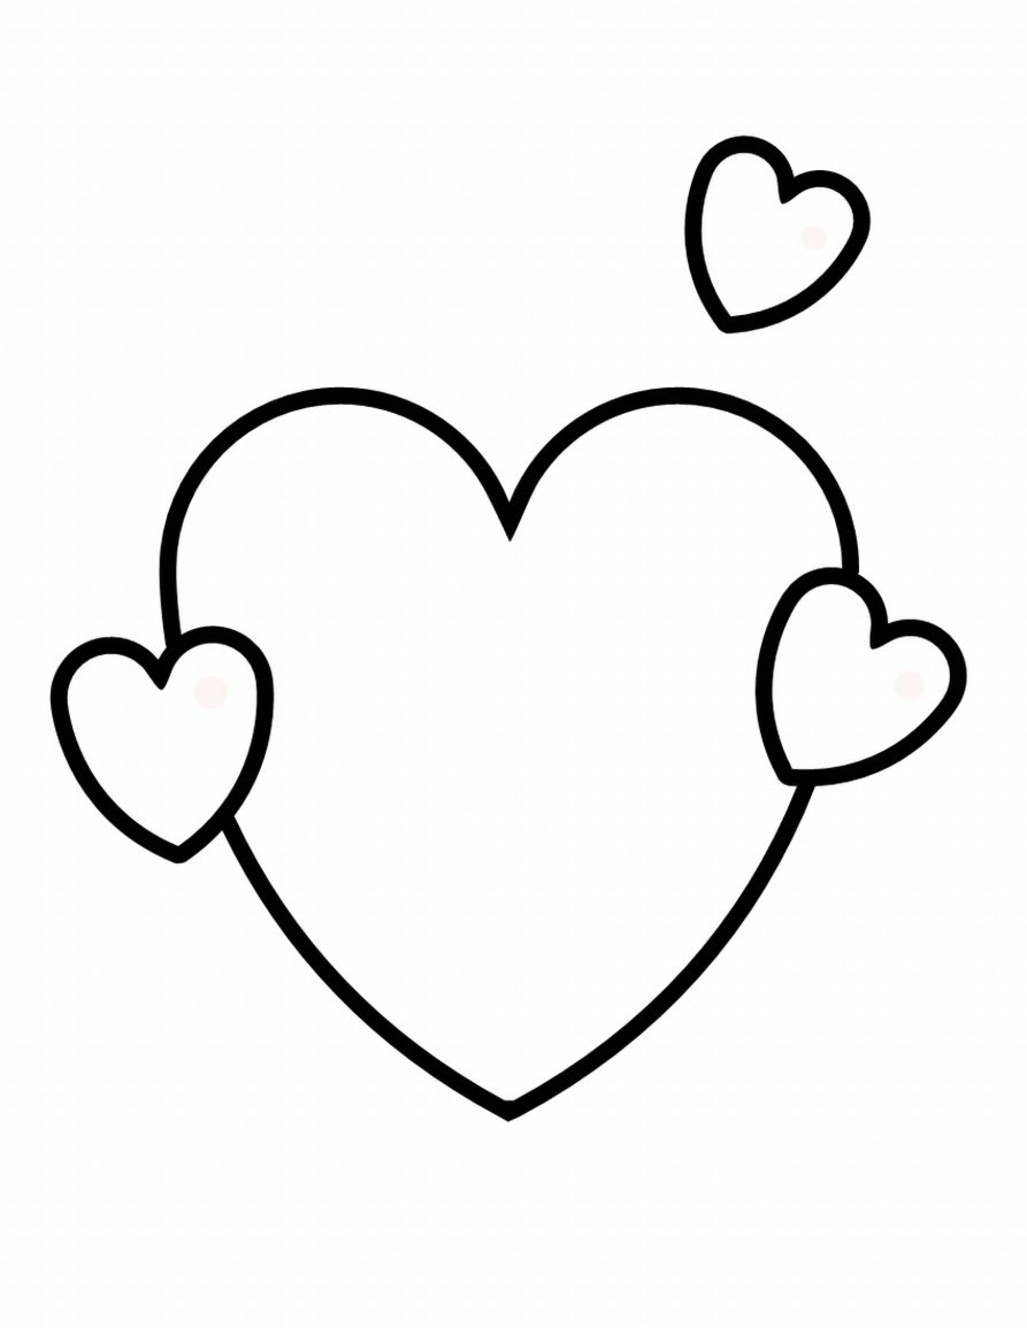 Heart With Wings Coloring Pages - ClipArt Best